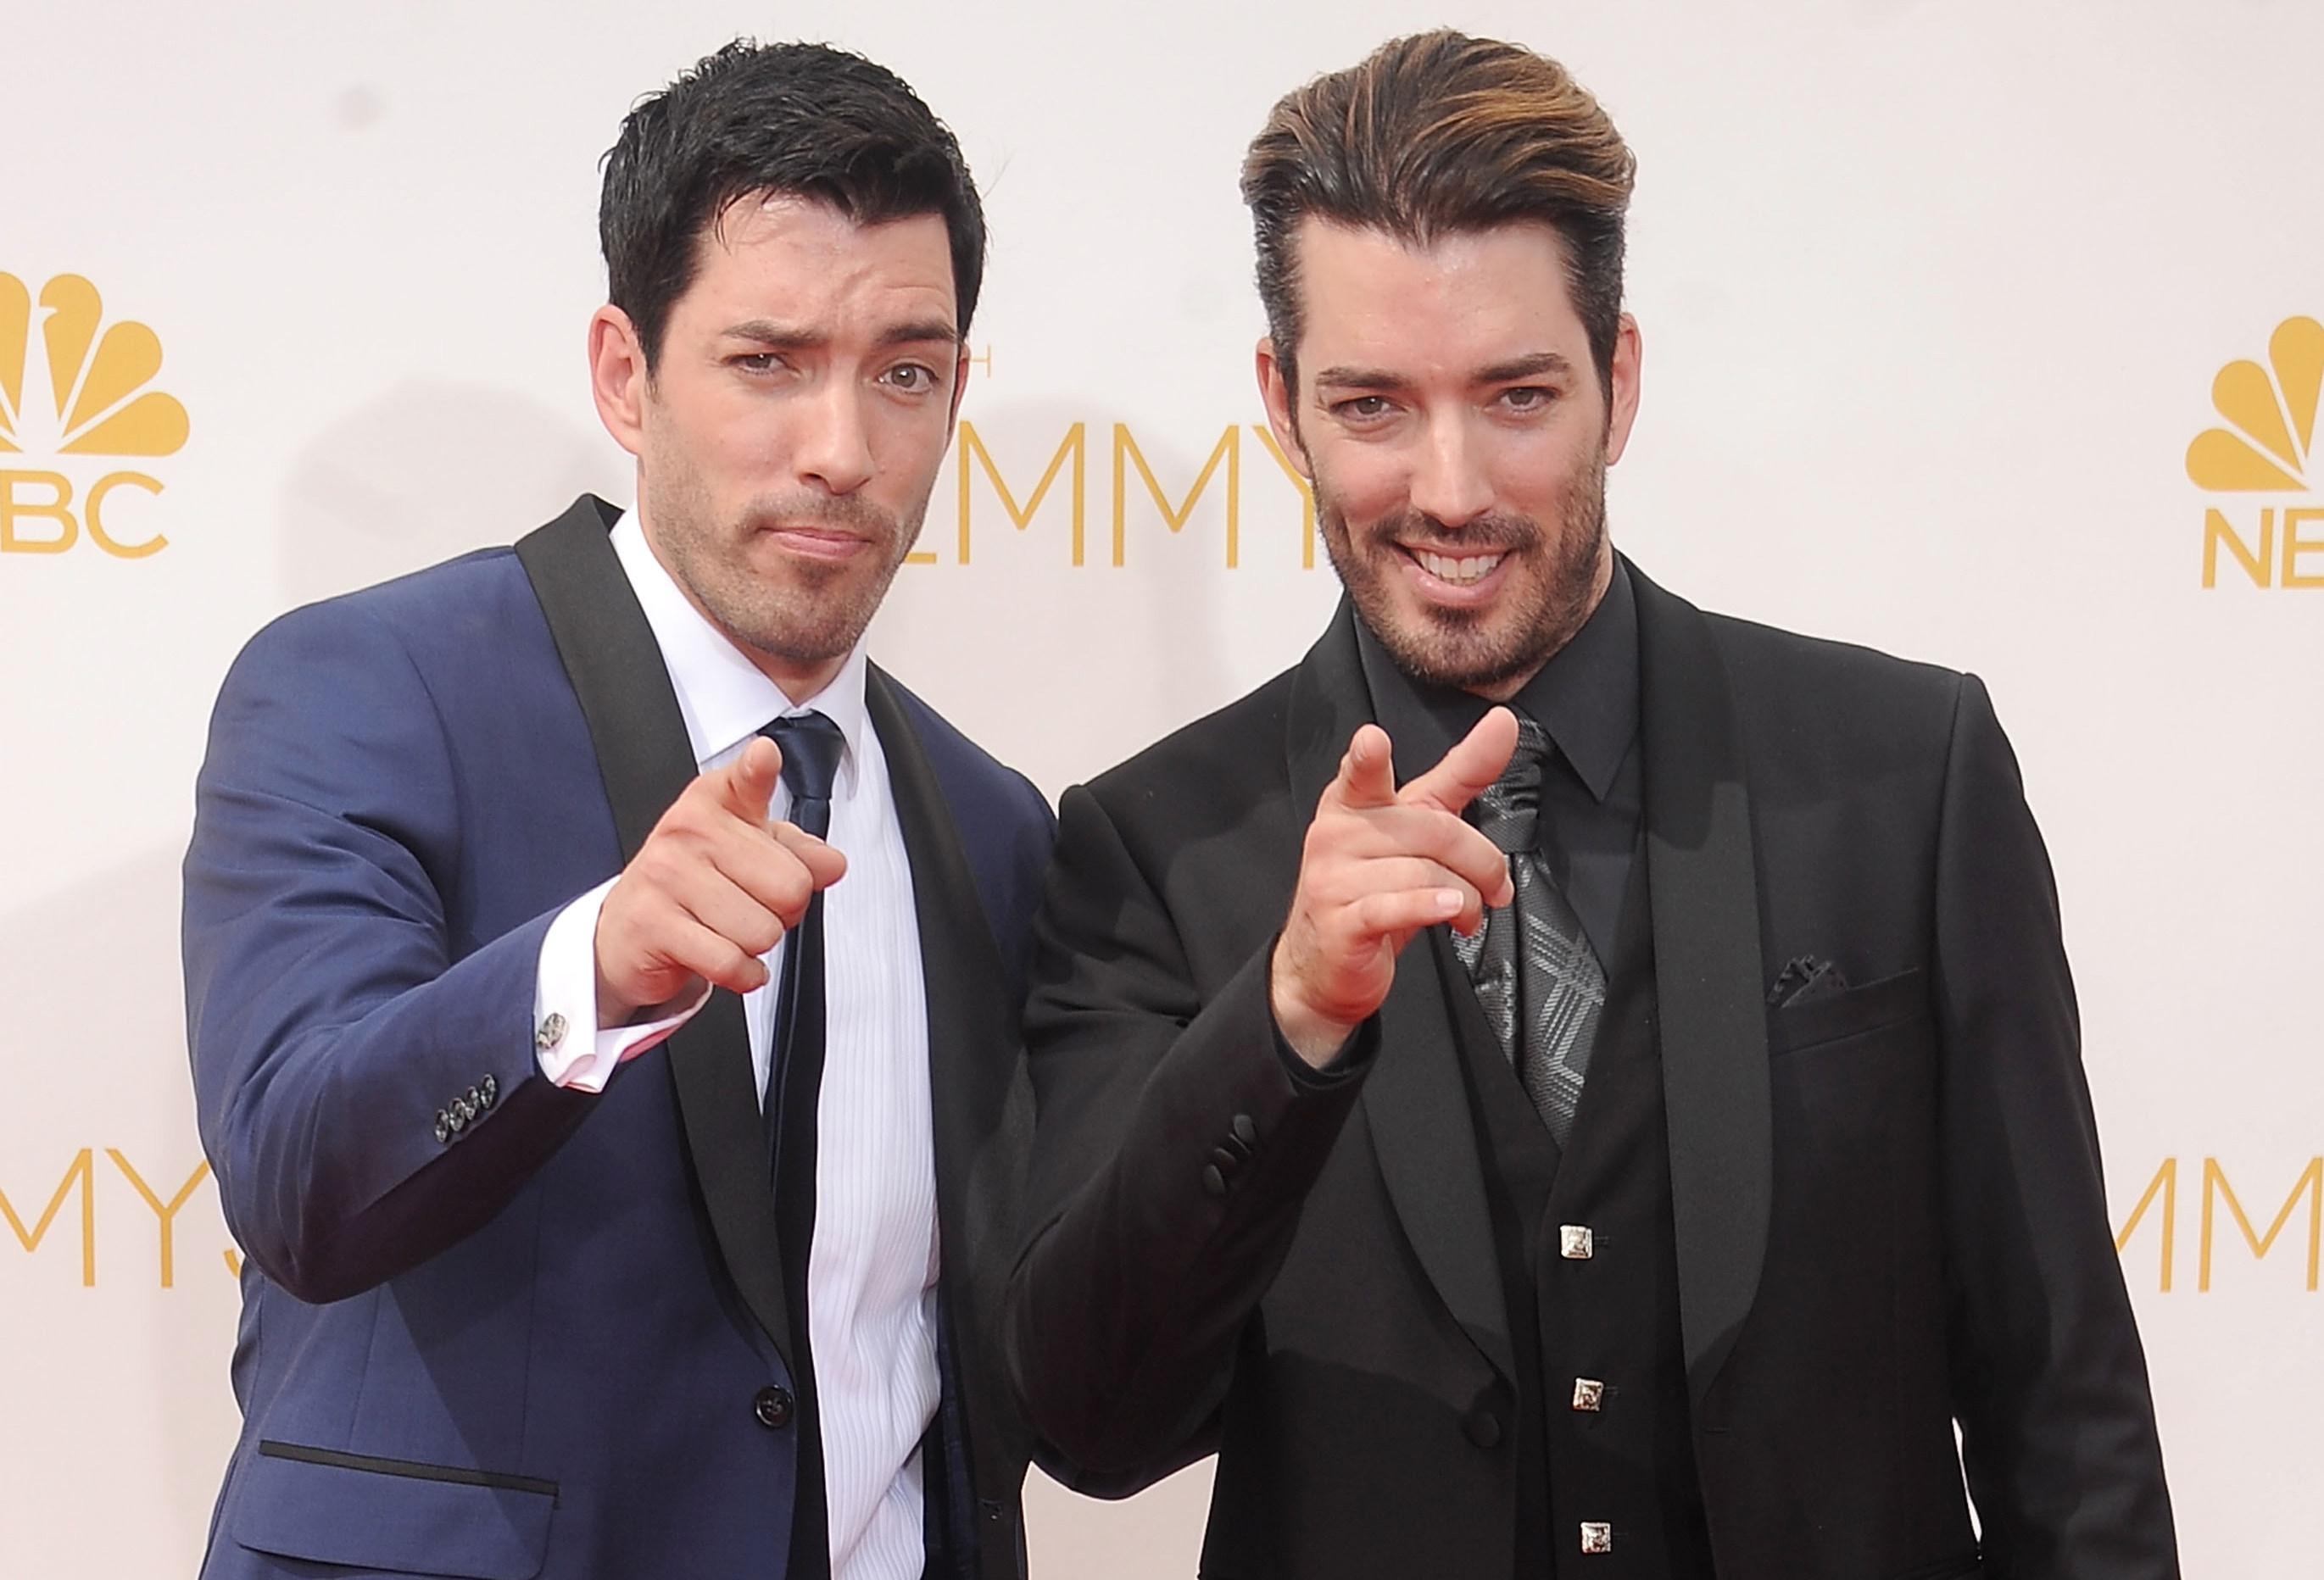 Drew Scott Wedding Date.Are The Property Brothers Gay Facts About Their Relationships